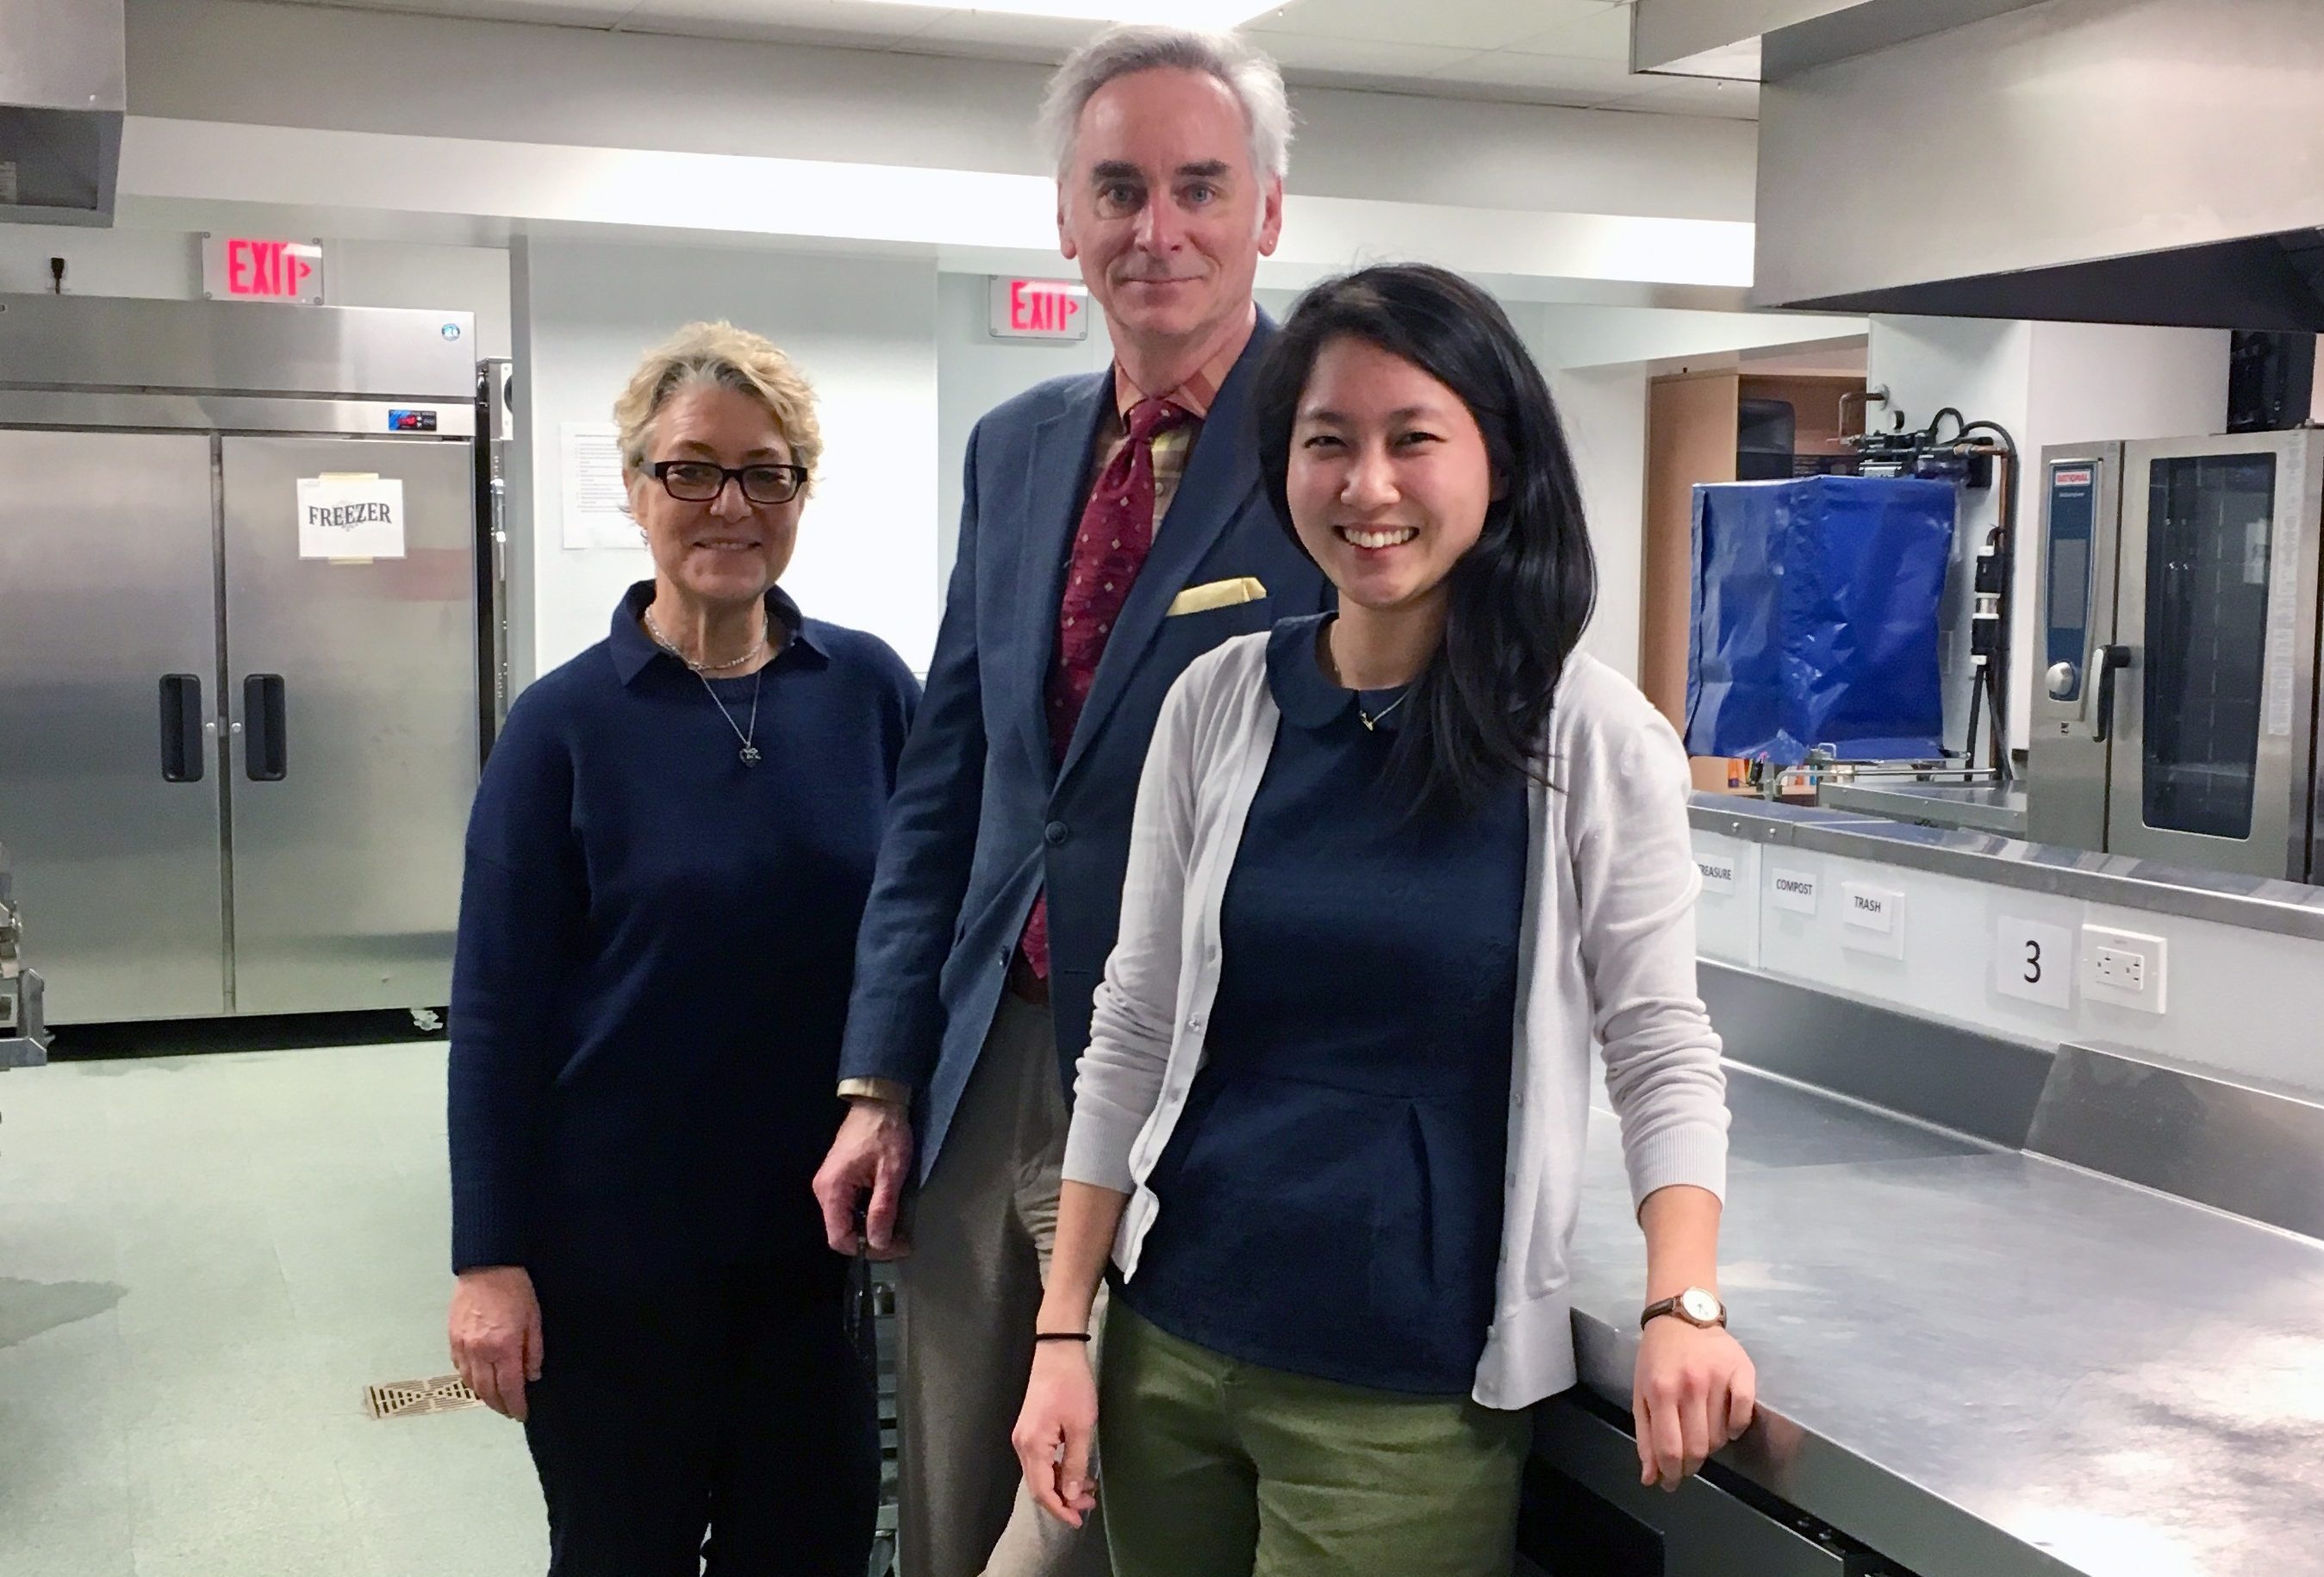 Karen Karp, President of KK&P, Executive Director and the Associate Dean for Clinical Services, Dr. Timothy Harlan, and consultant intern Amy Gu, a current MBA student at New York University's Stern School of Business, the Goldring Center